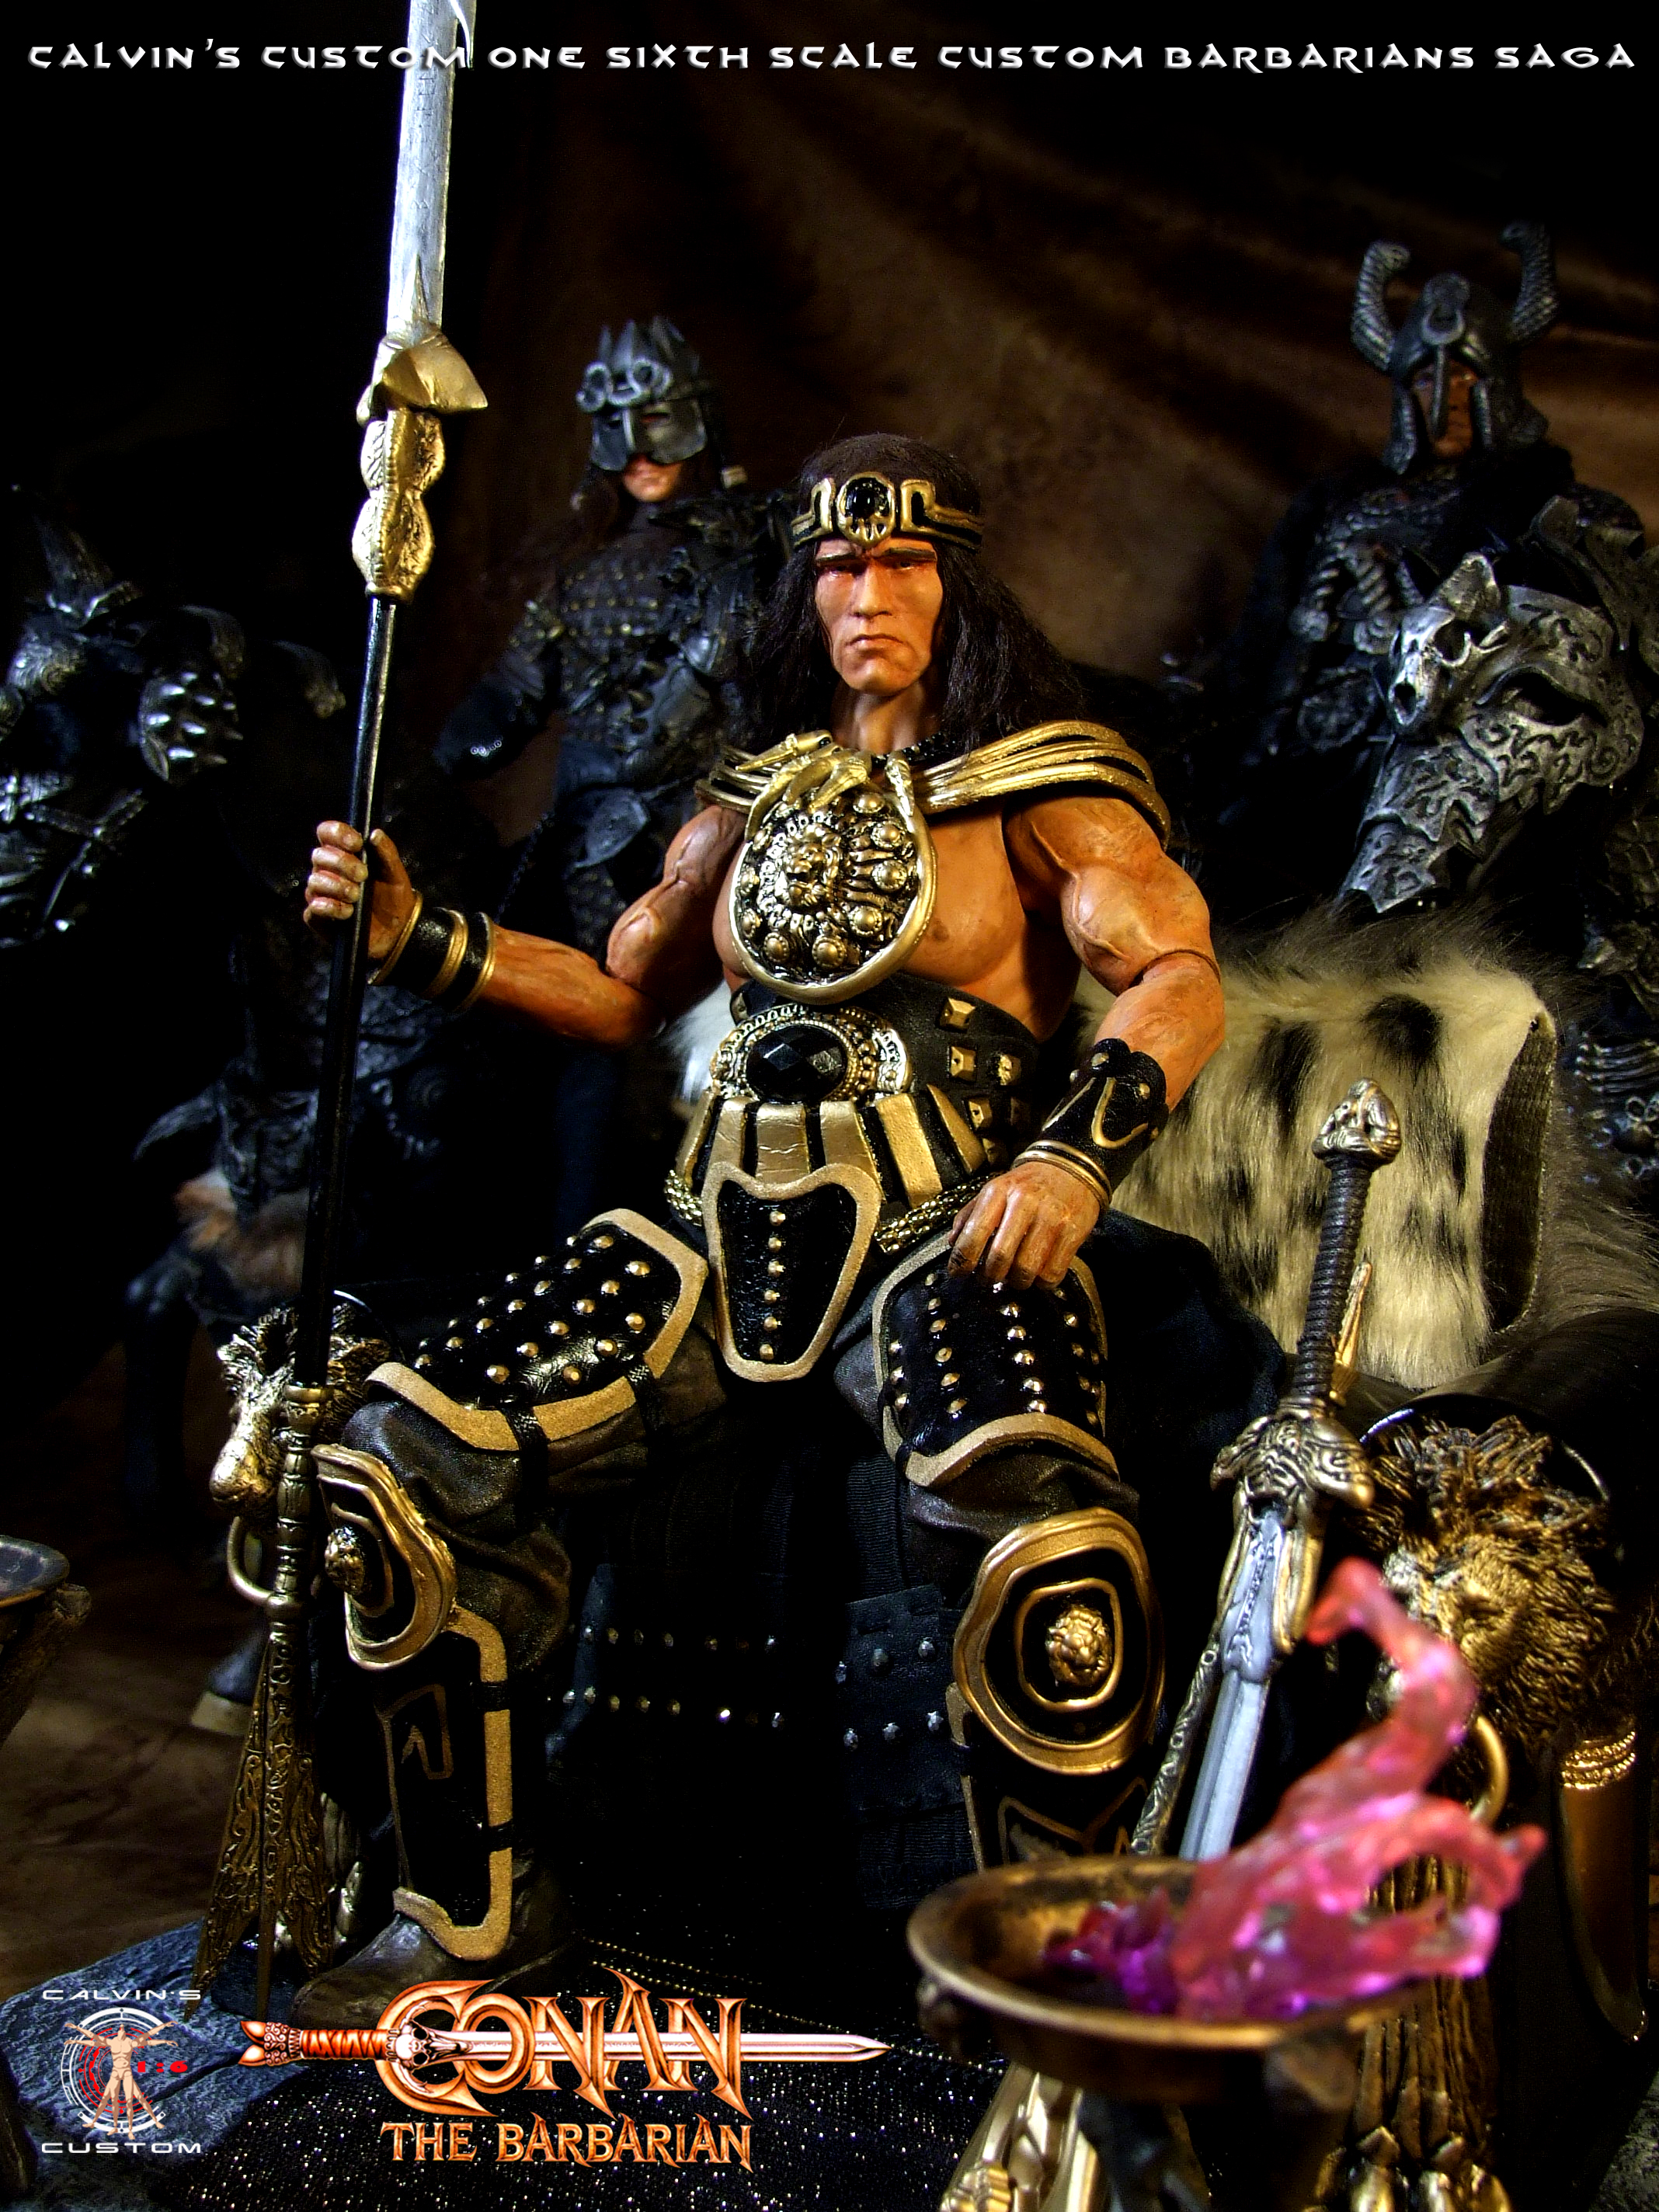 Calvin's Custom 1/6 one sixth scale Arnold Schwarzenegger as King Conan, based on Conan the Barbaria